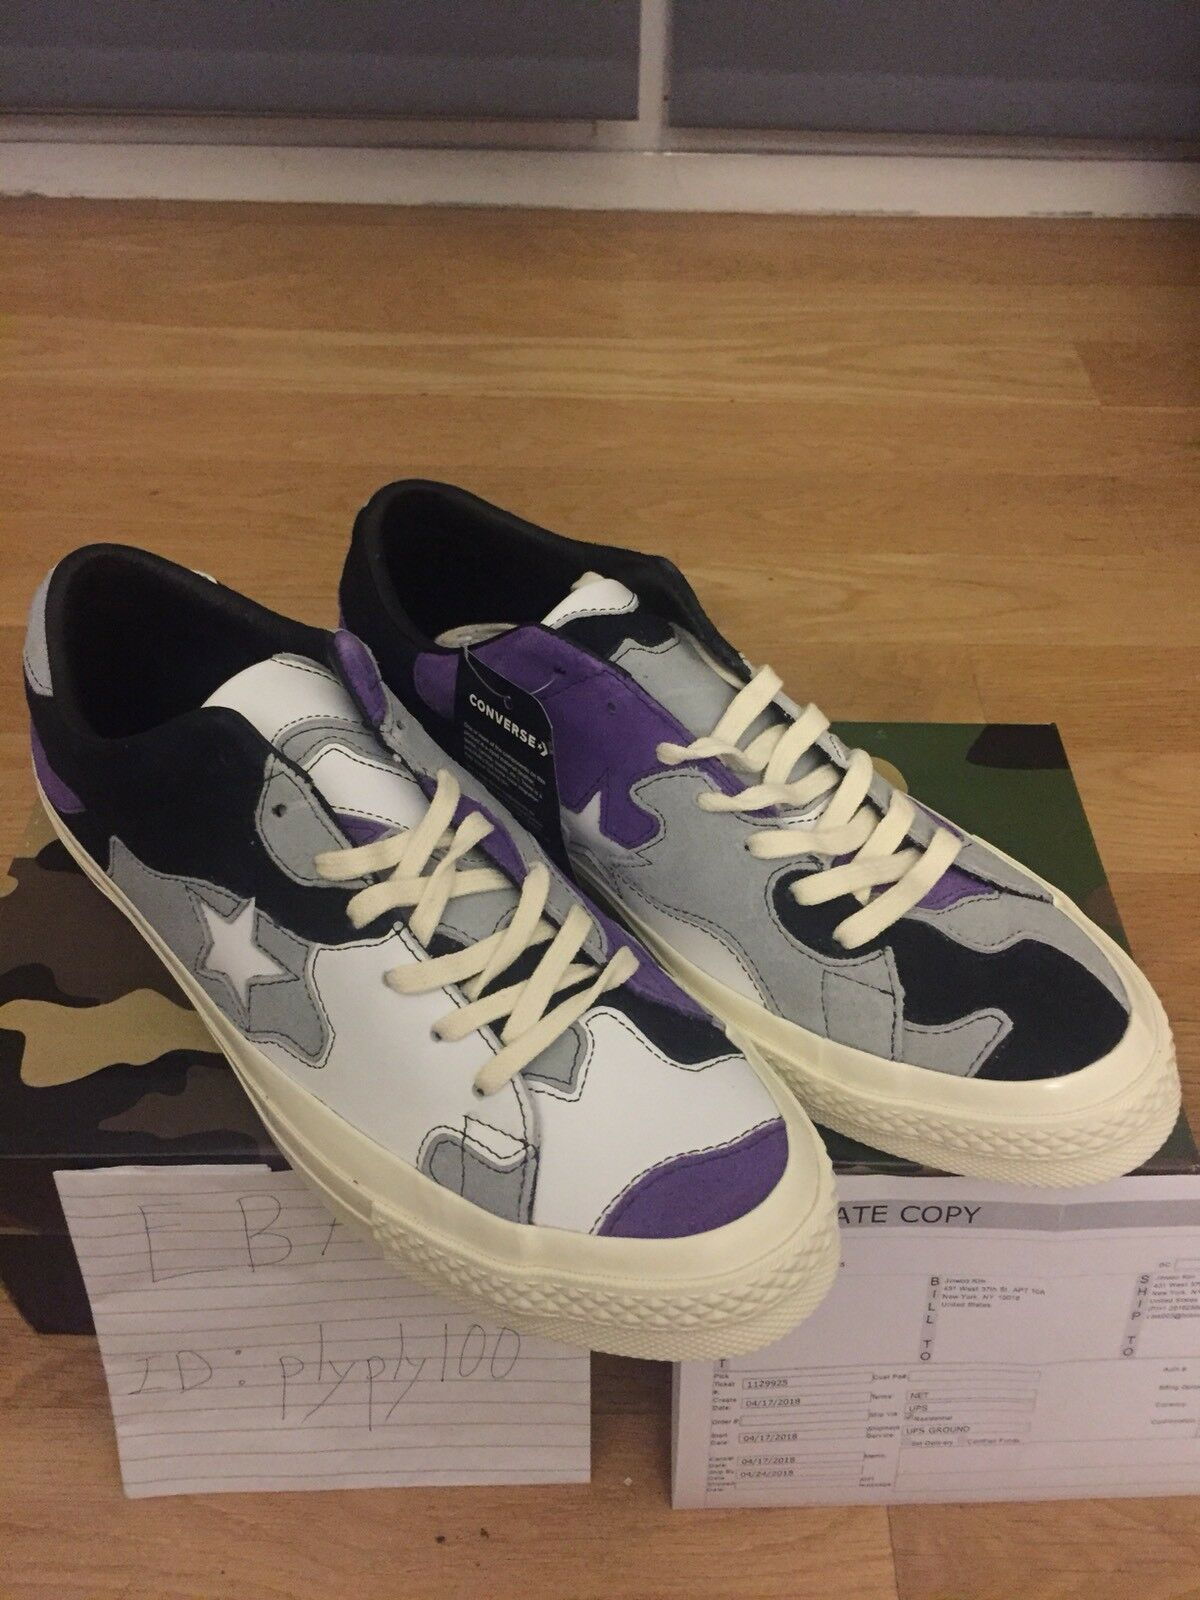 Converse One Star X Sneakersnstuff SNS Purple Camo US Size 11